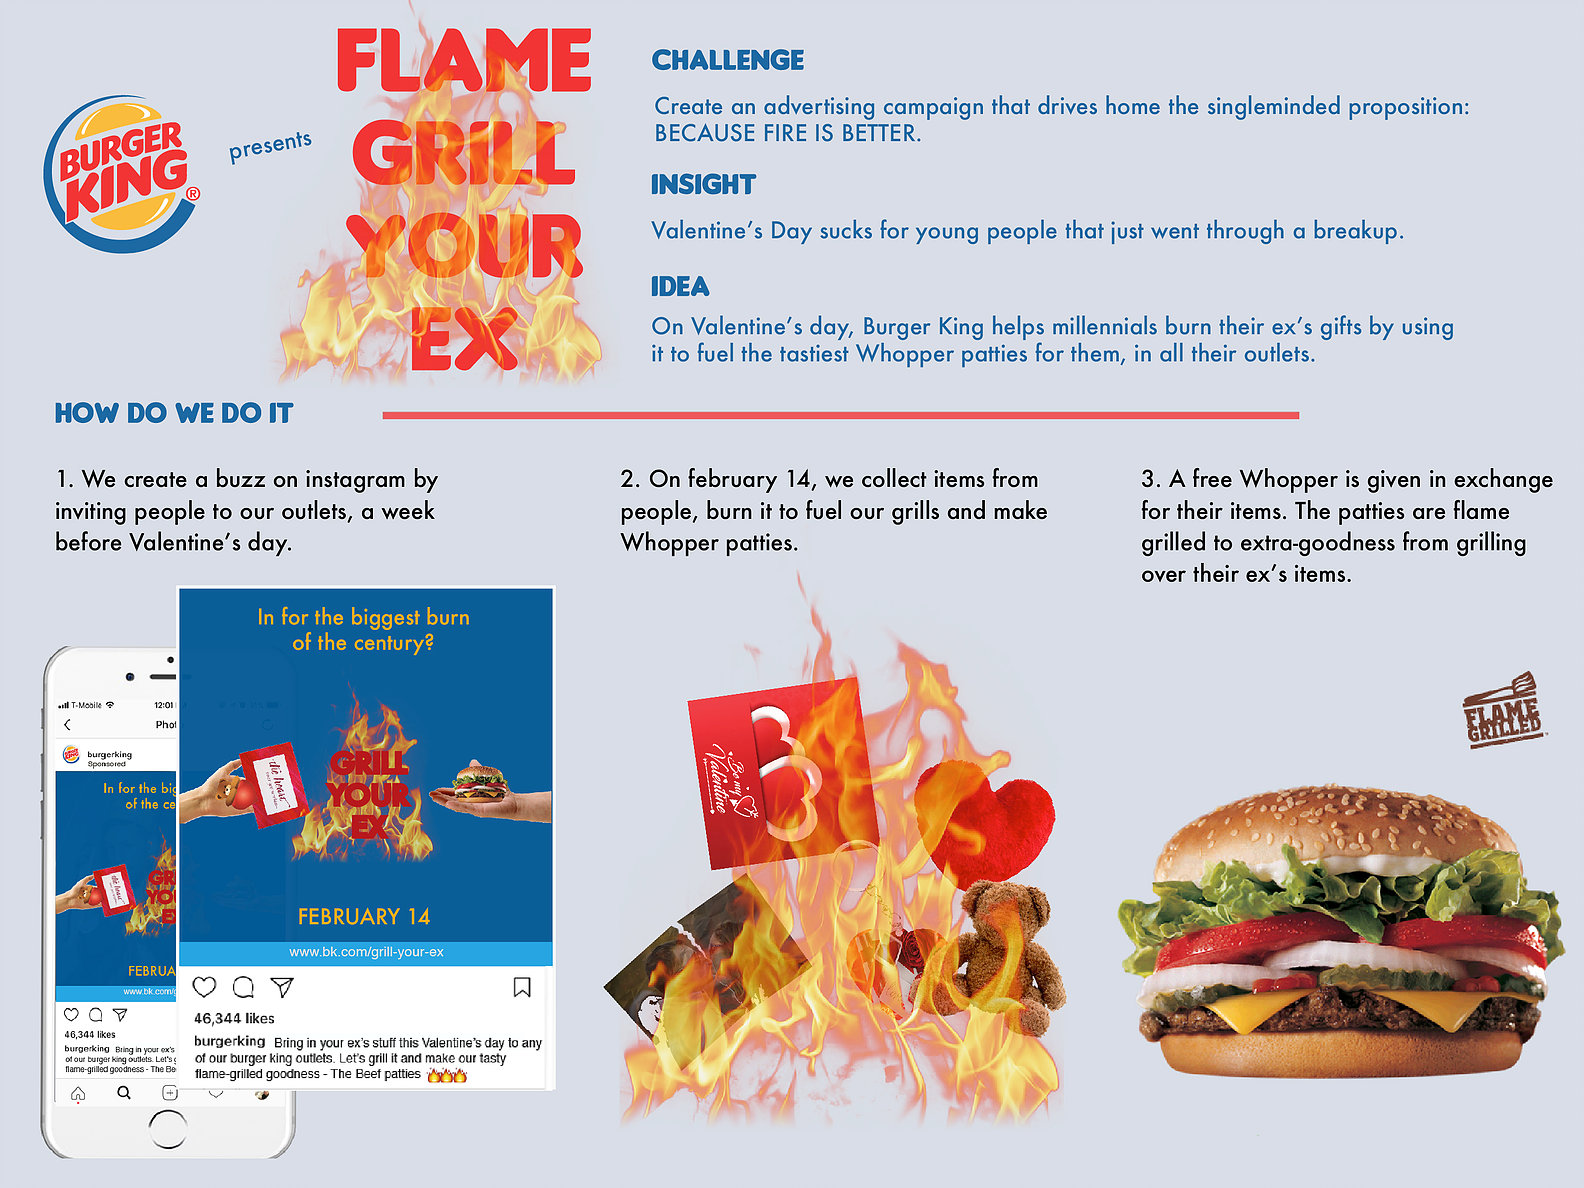 Burger King Digital Advert By Miami Ad School: Flame Grill your EX ...